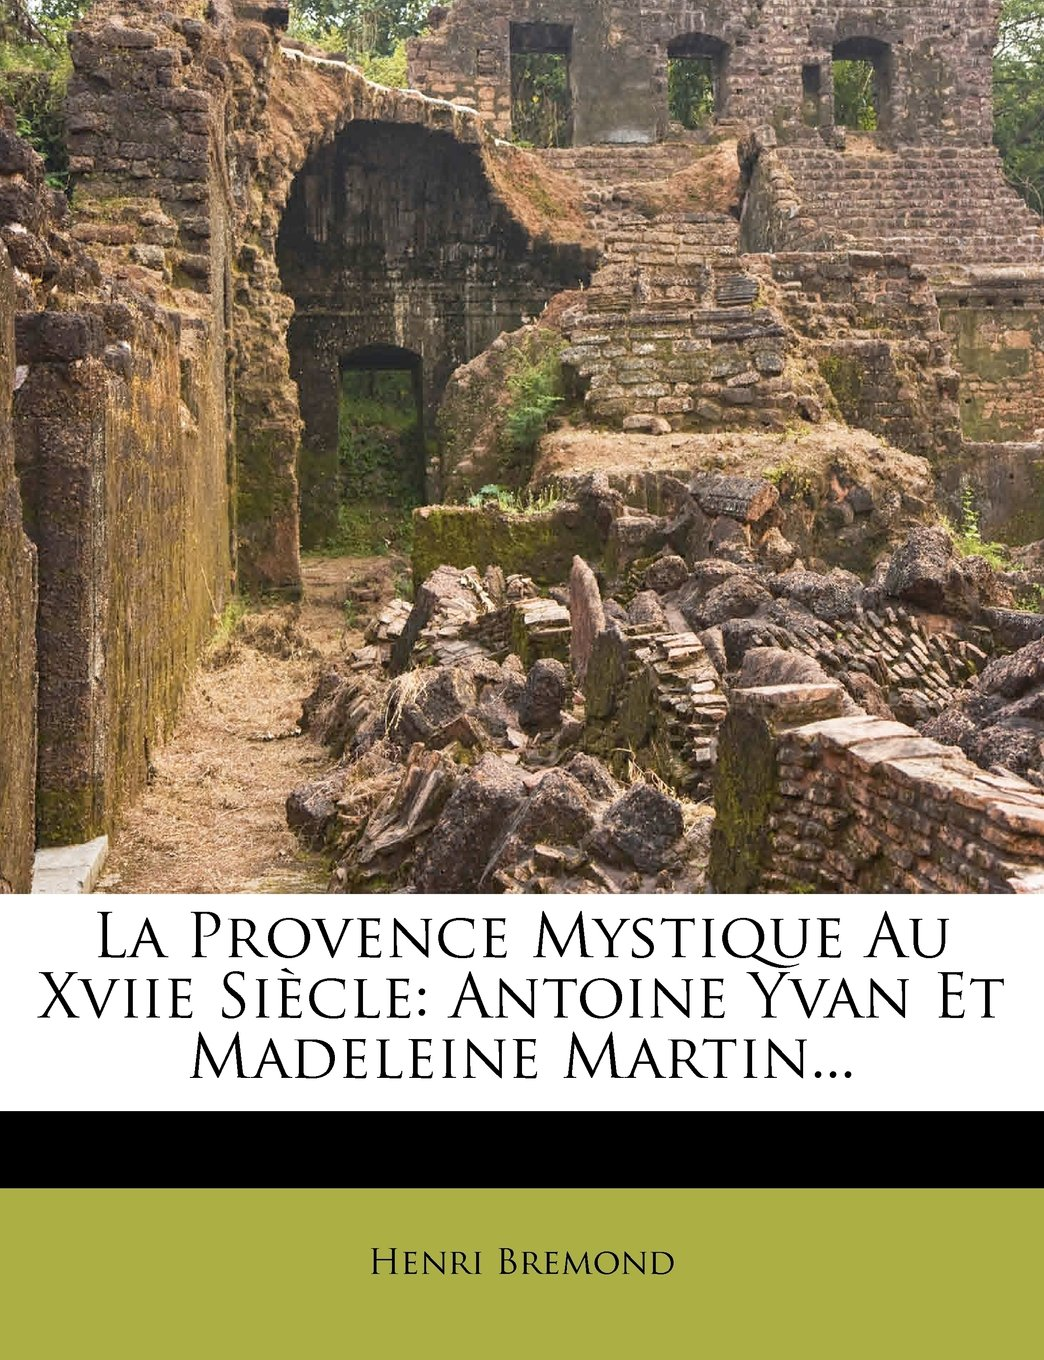 Download La Provence Mystique Au Xviie Siècle: Antoine Yvan Et Madeleine Martin... (French Edition) ebook